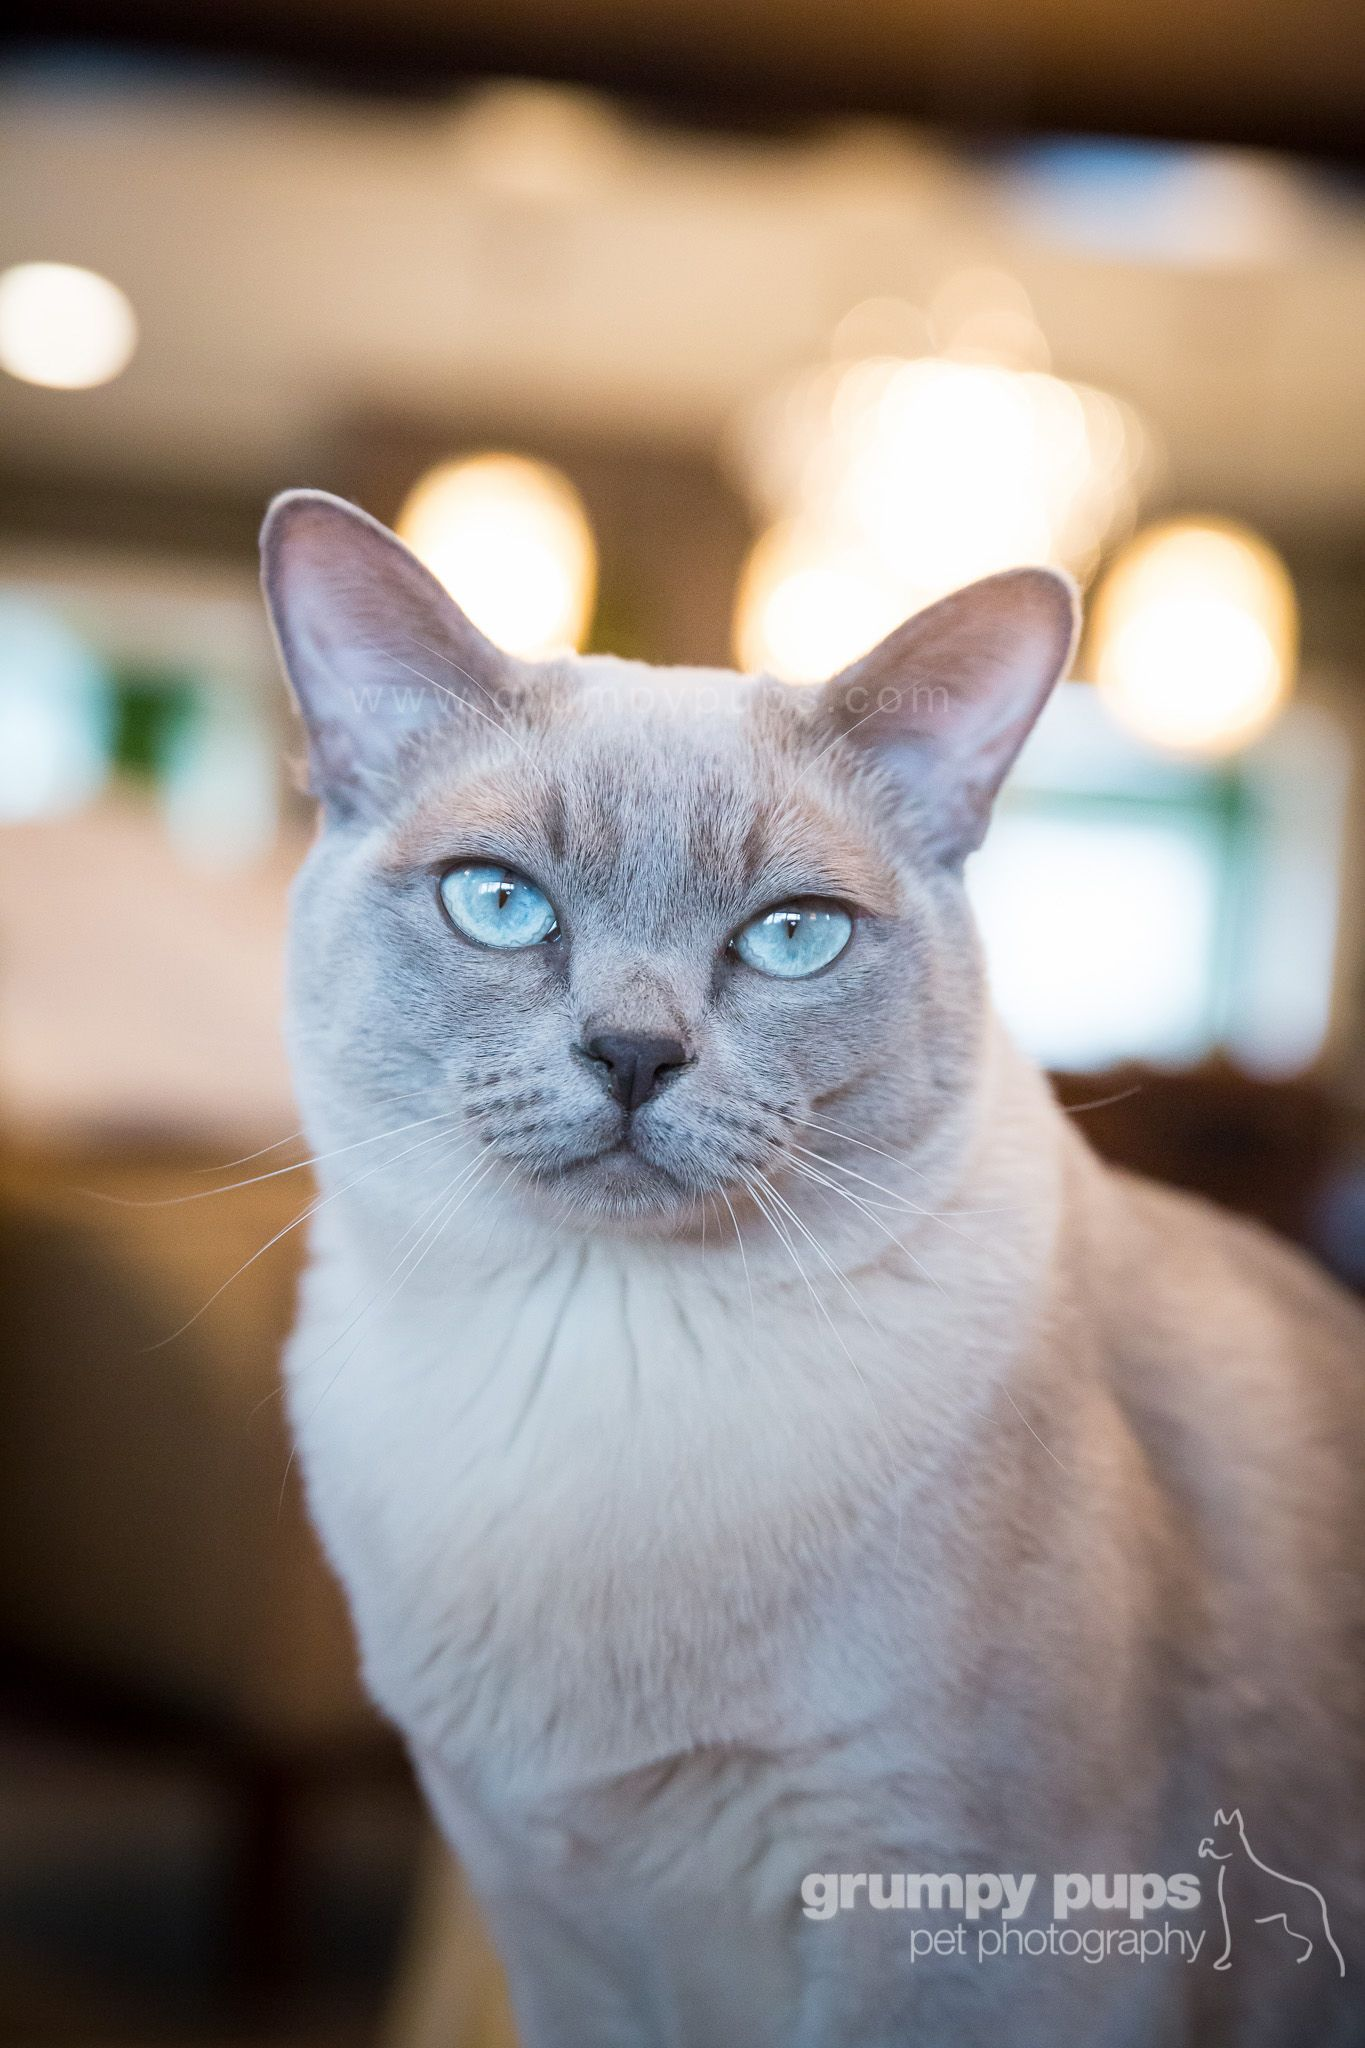 Tonkinese cat, photo by Grumpy Pups Pet Photography (With